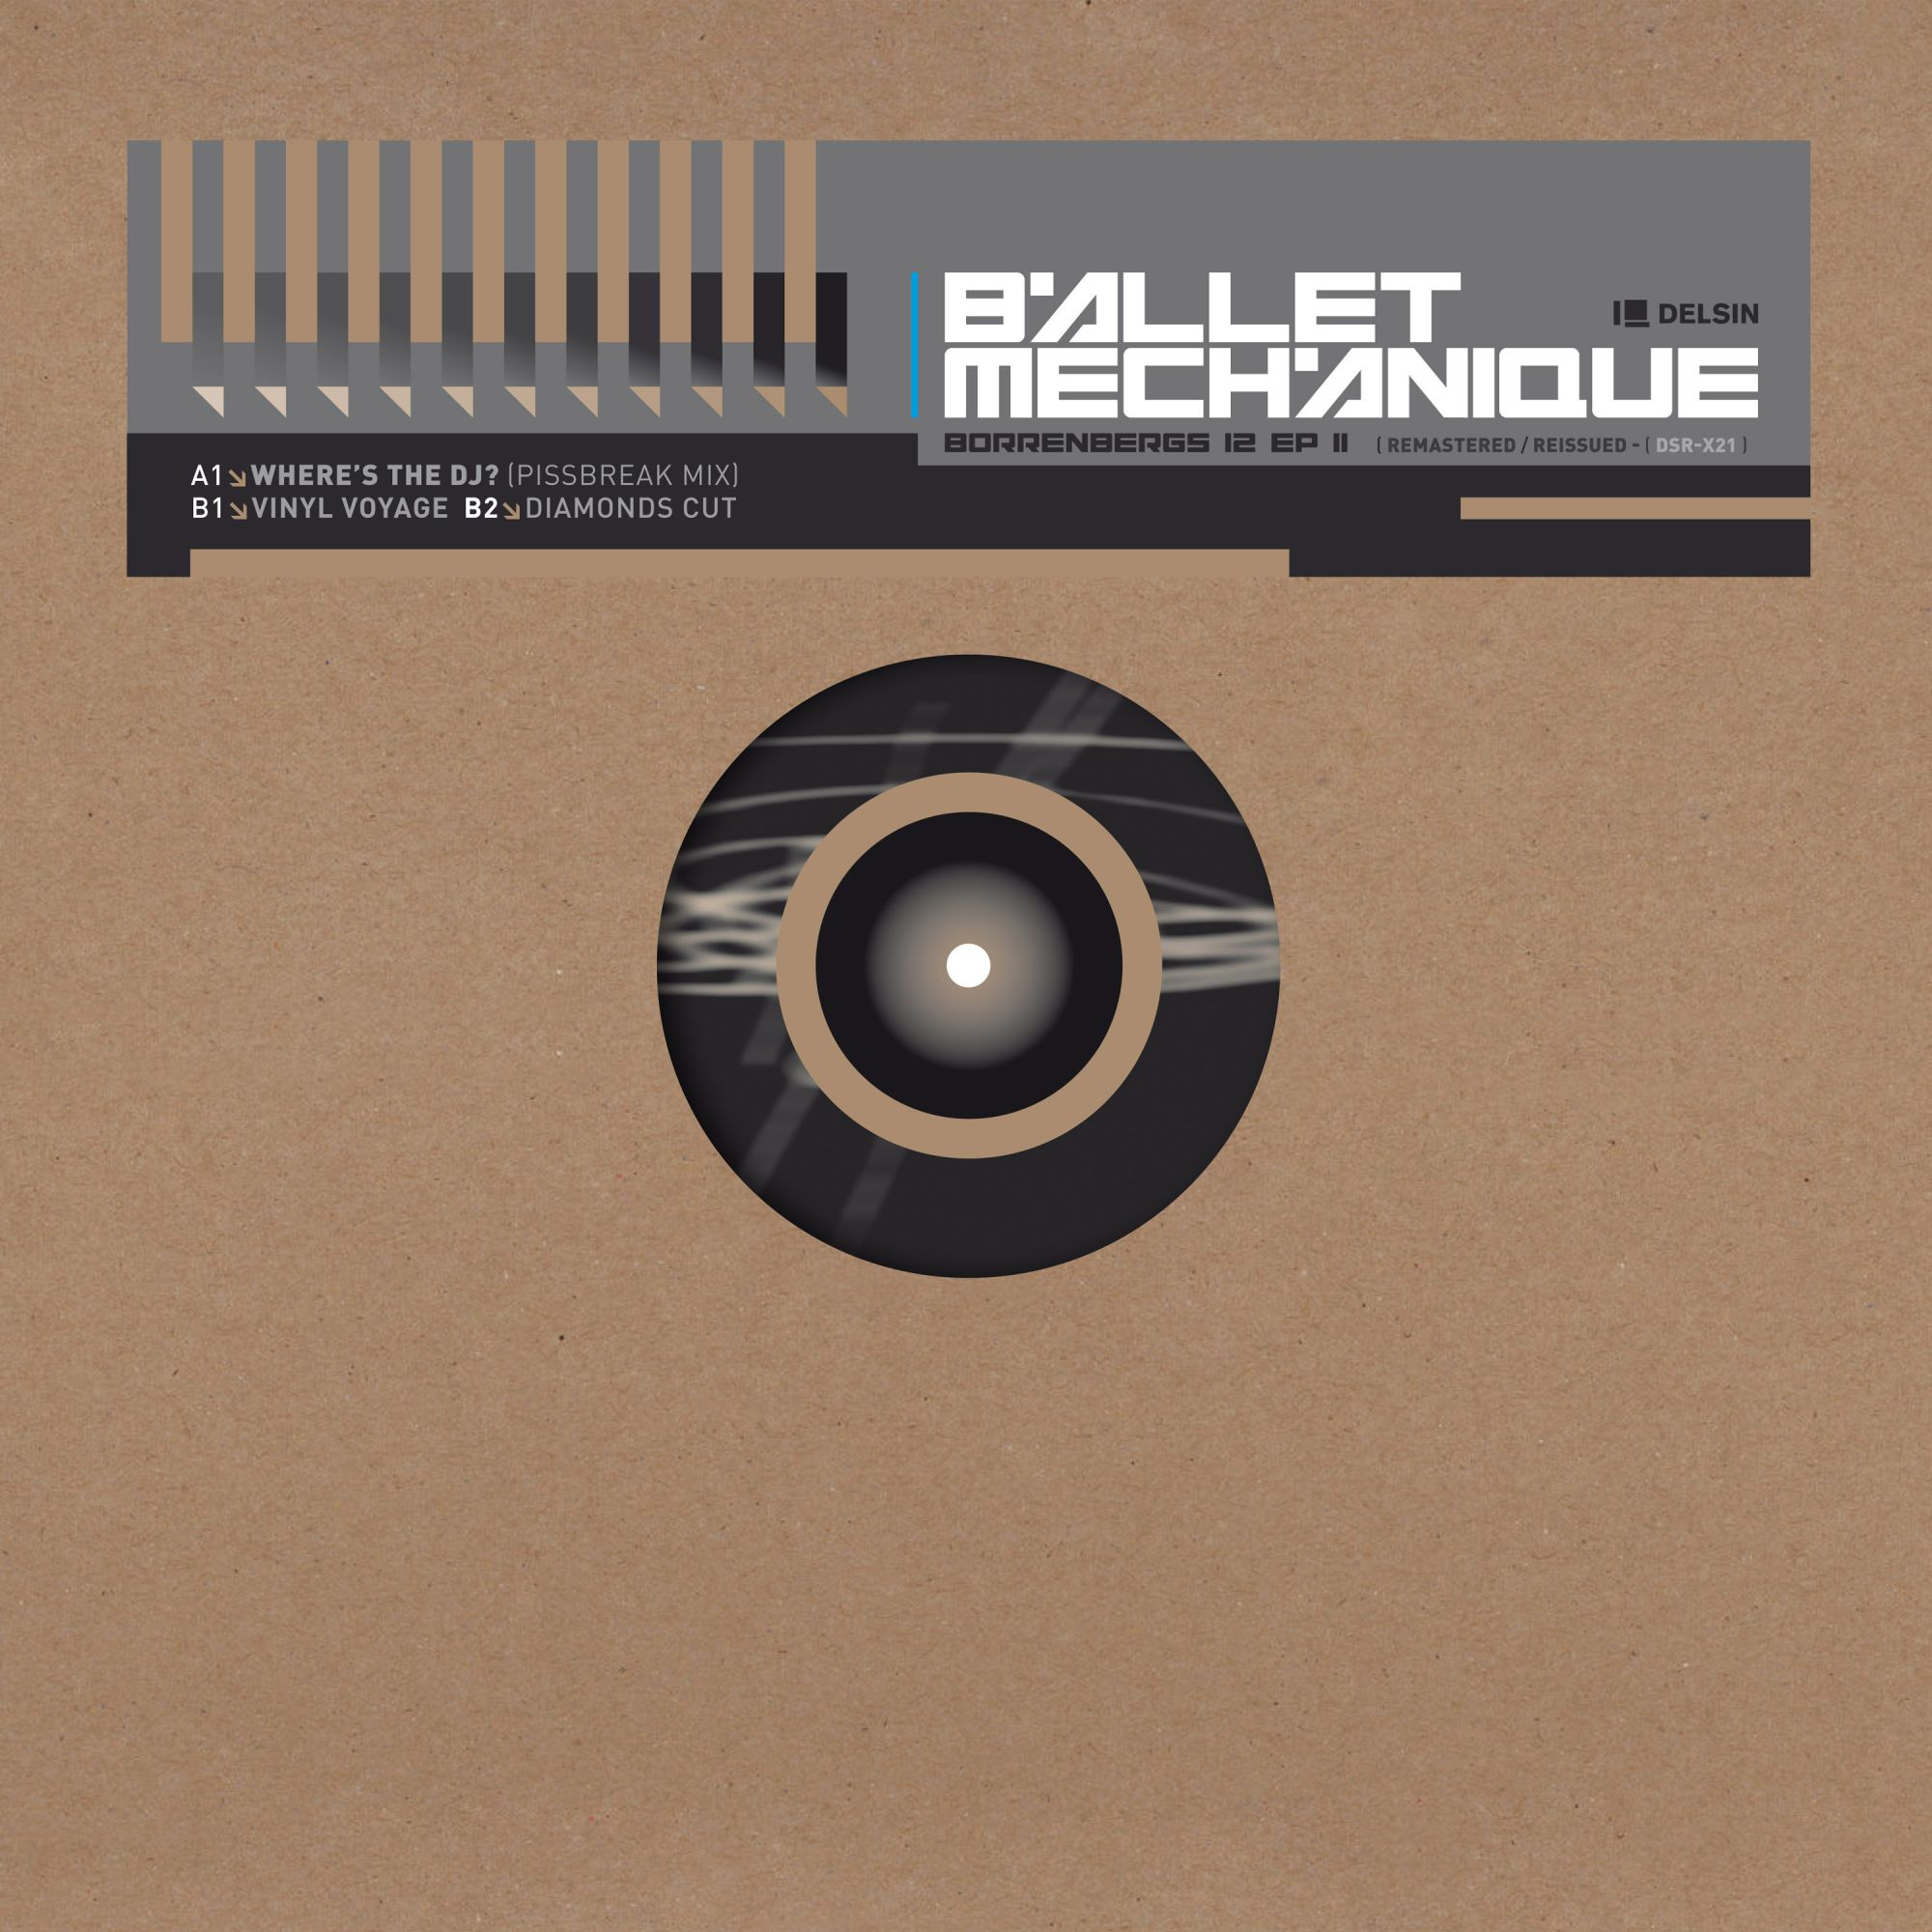 Ballet Mechanique - Borrenbergs 12 EP II